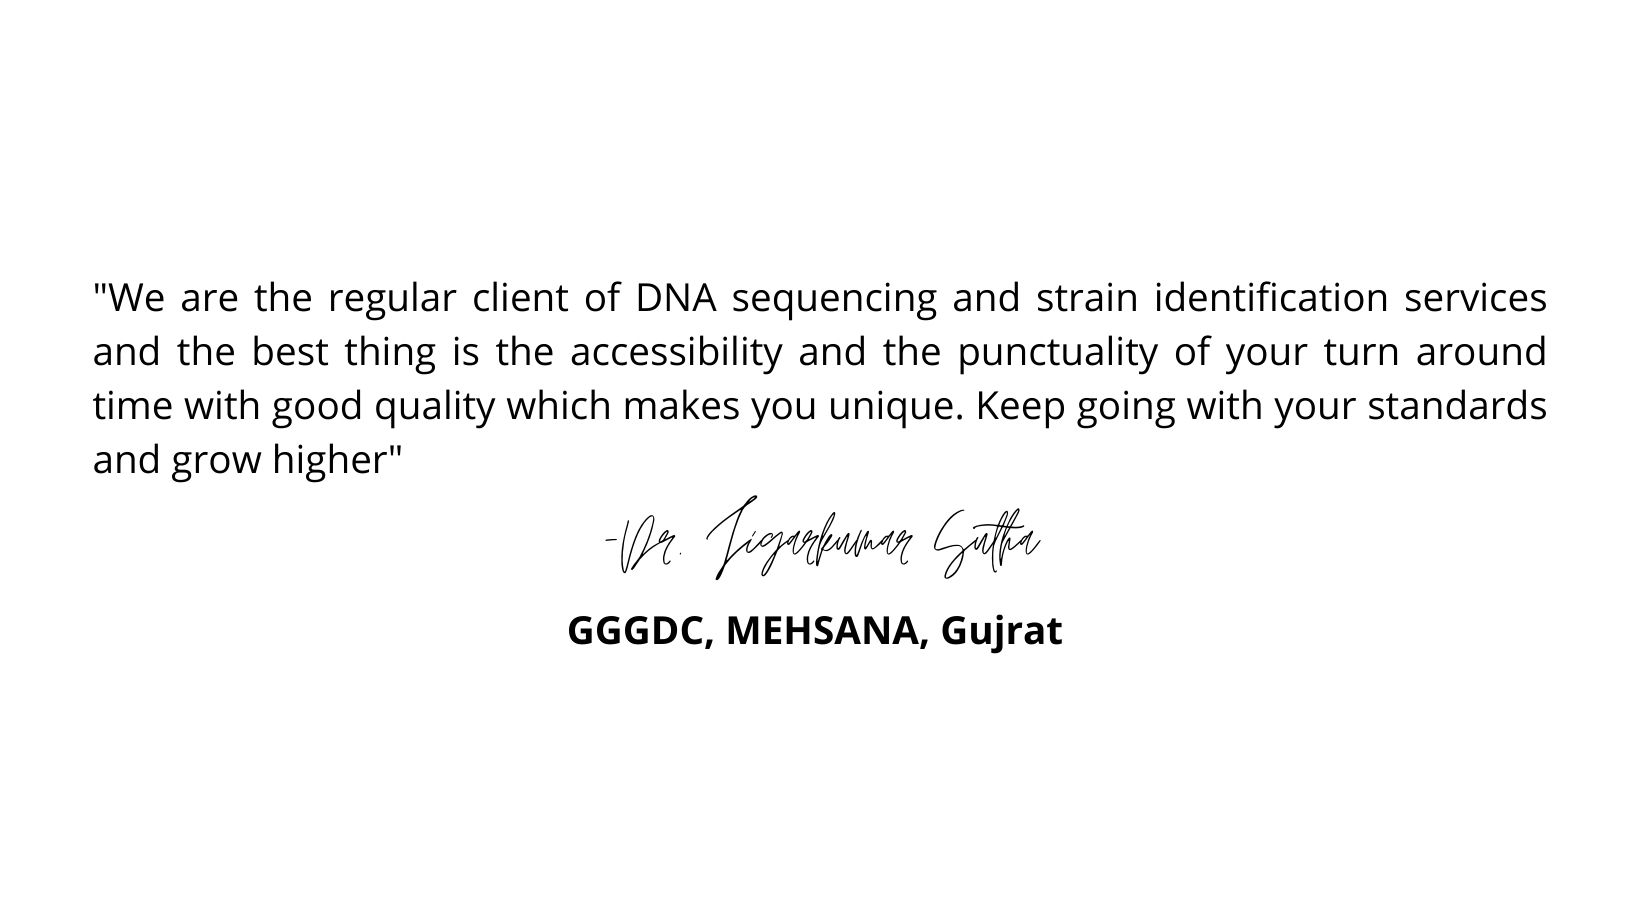 I have been using their service of sequencing for a while and the results were fast and also very satisfactory. Even for one data clarification they take it serious and gave me correct information. I (2)